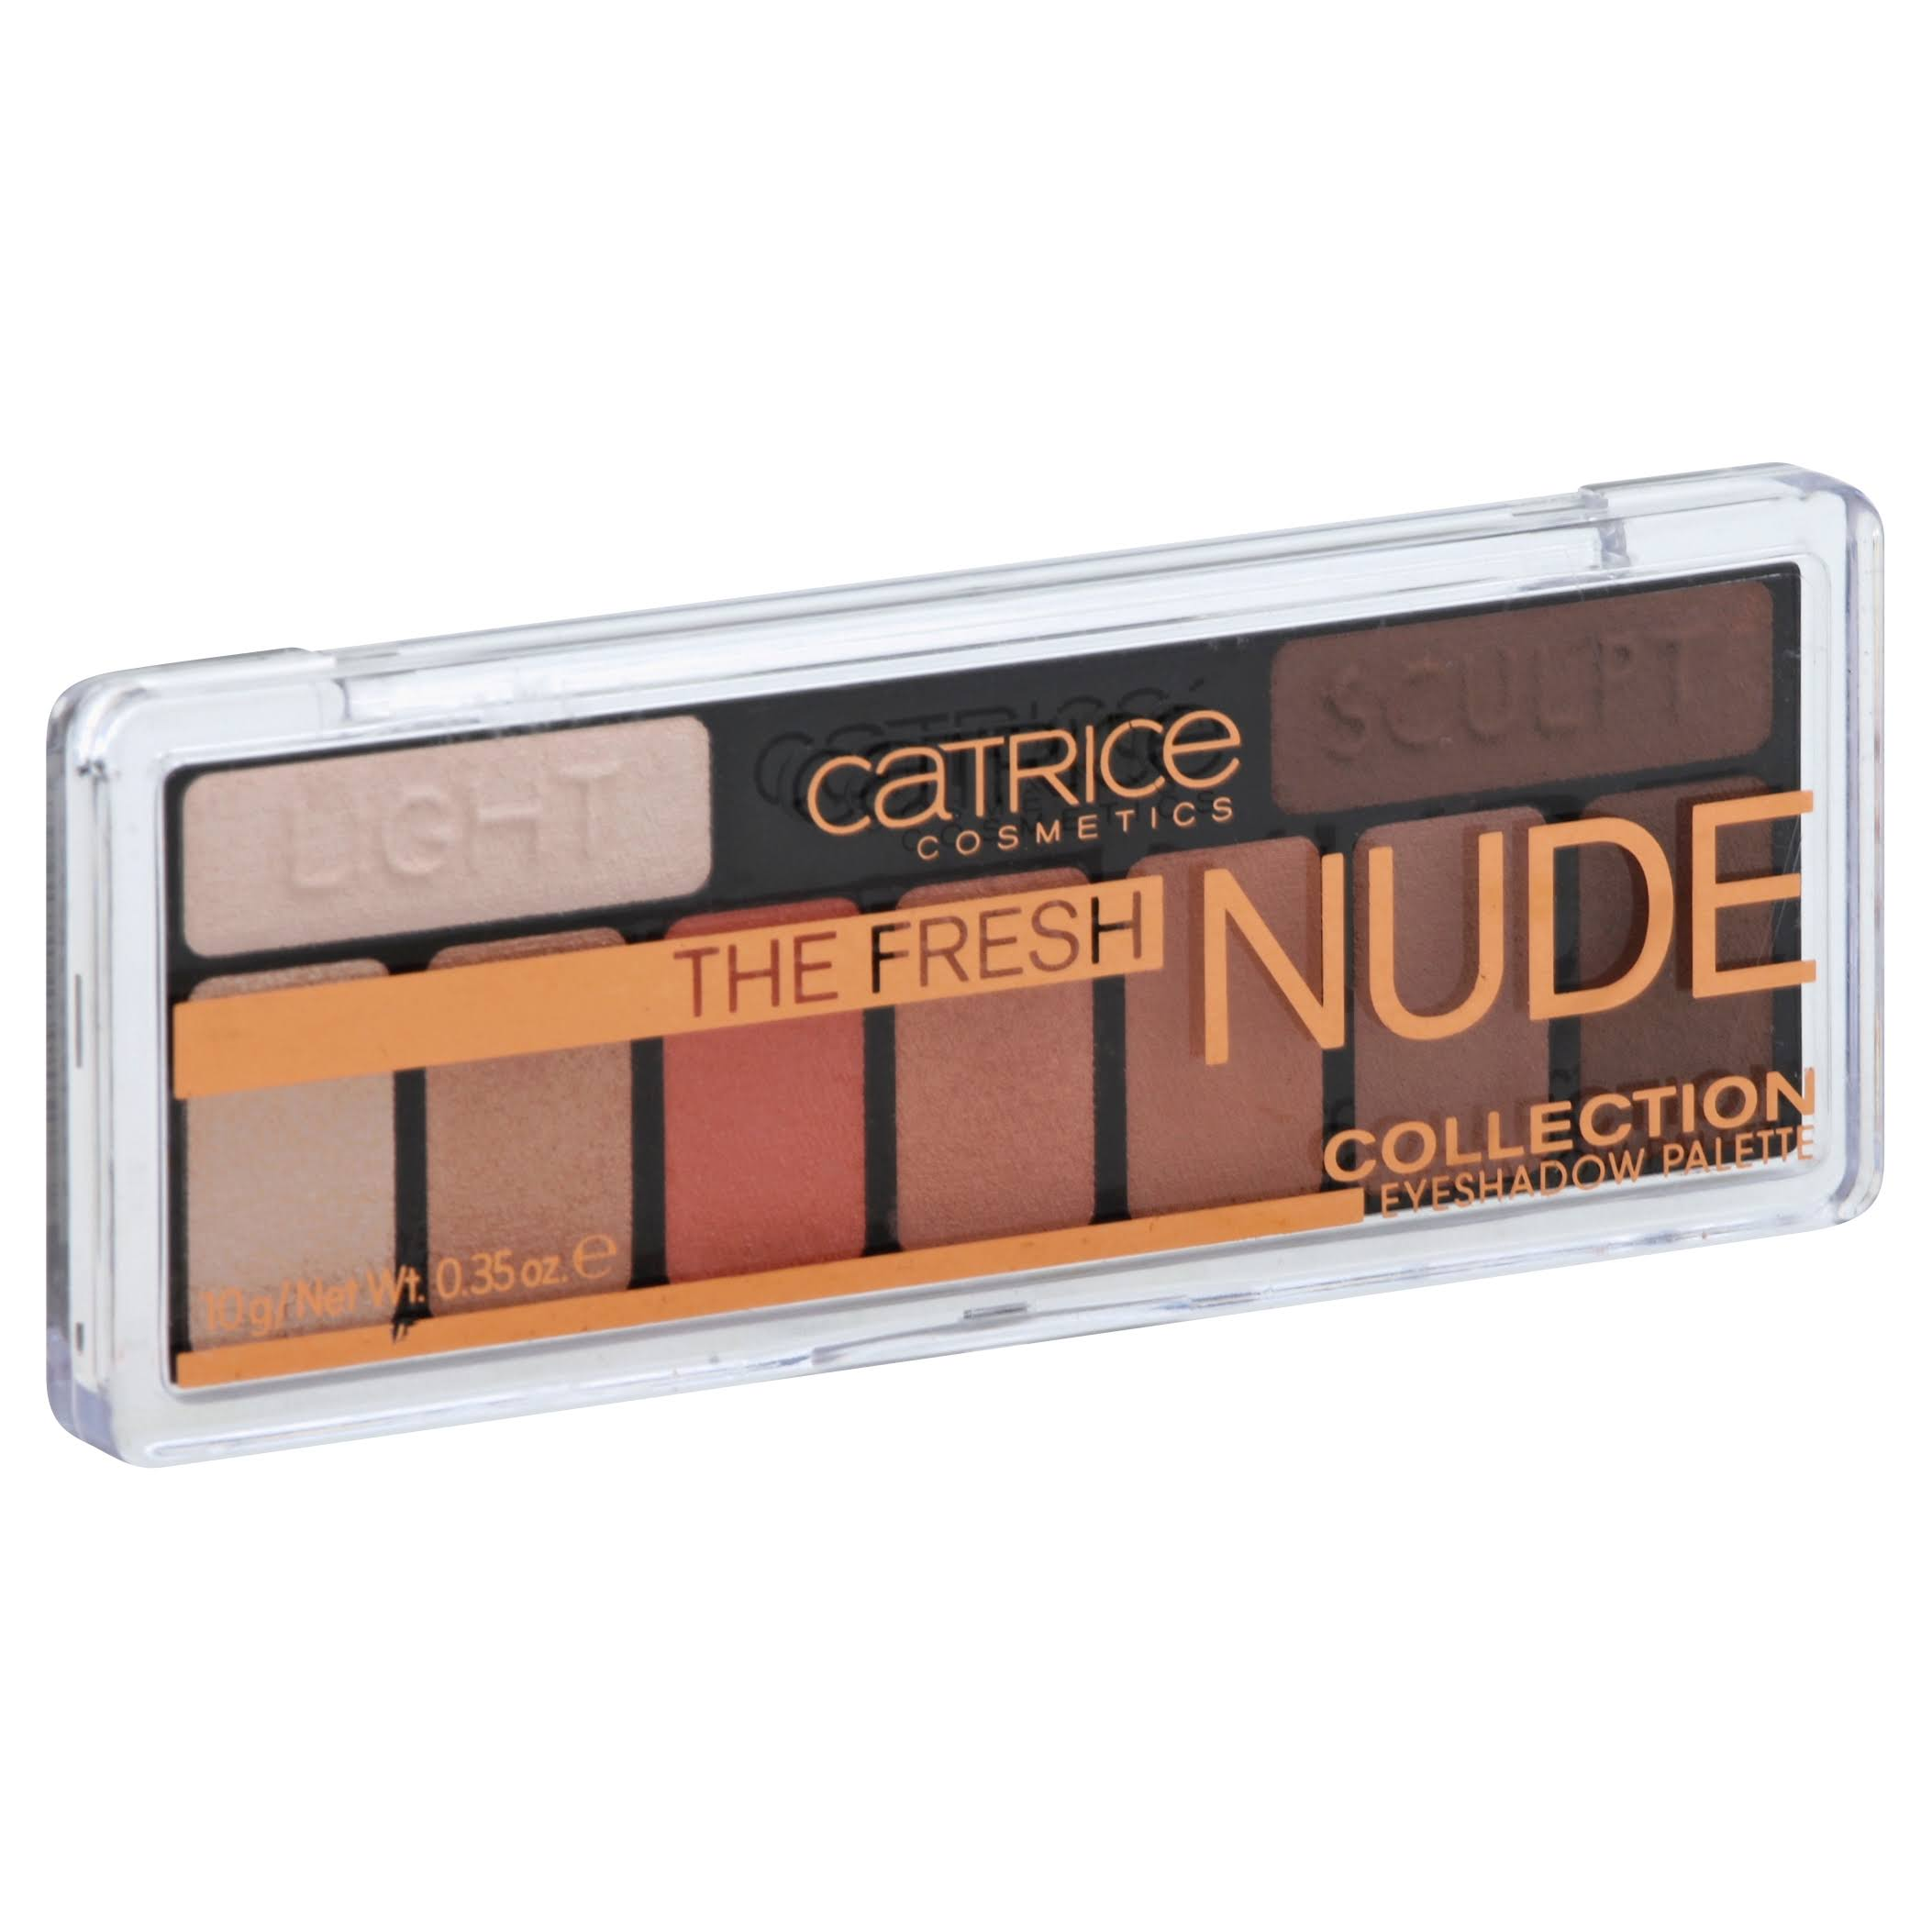 Catrice The Fresh Nude Collection Eyeshadow Palette - 010 Newly Nude, 10g